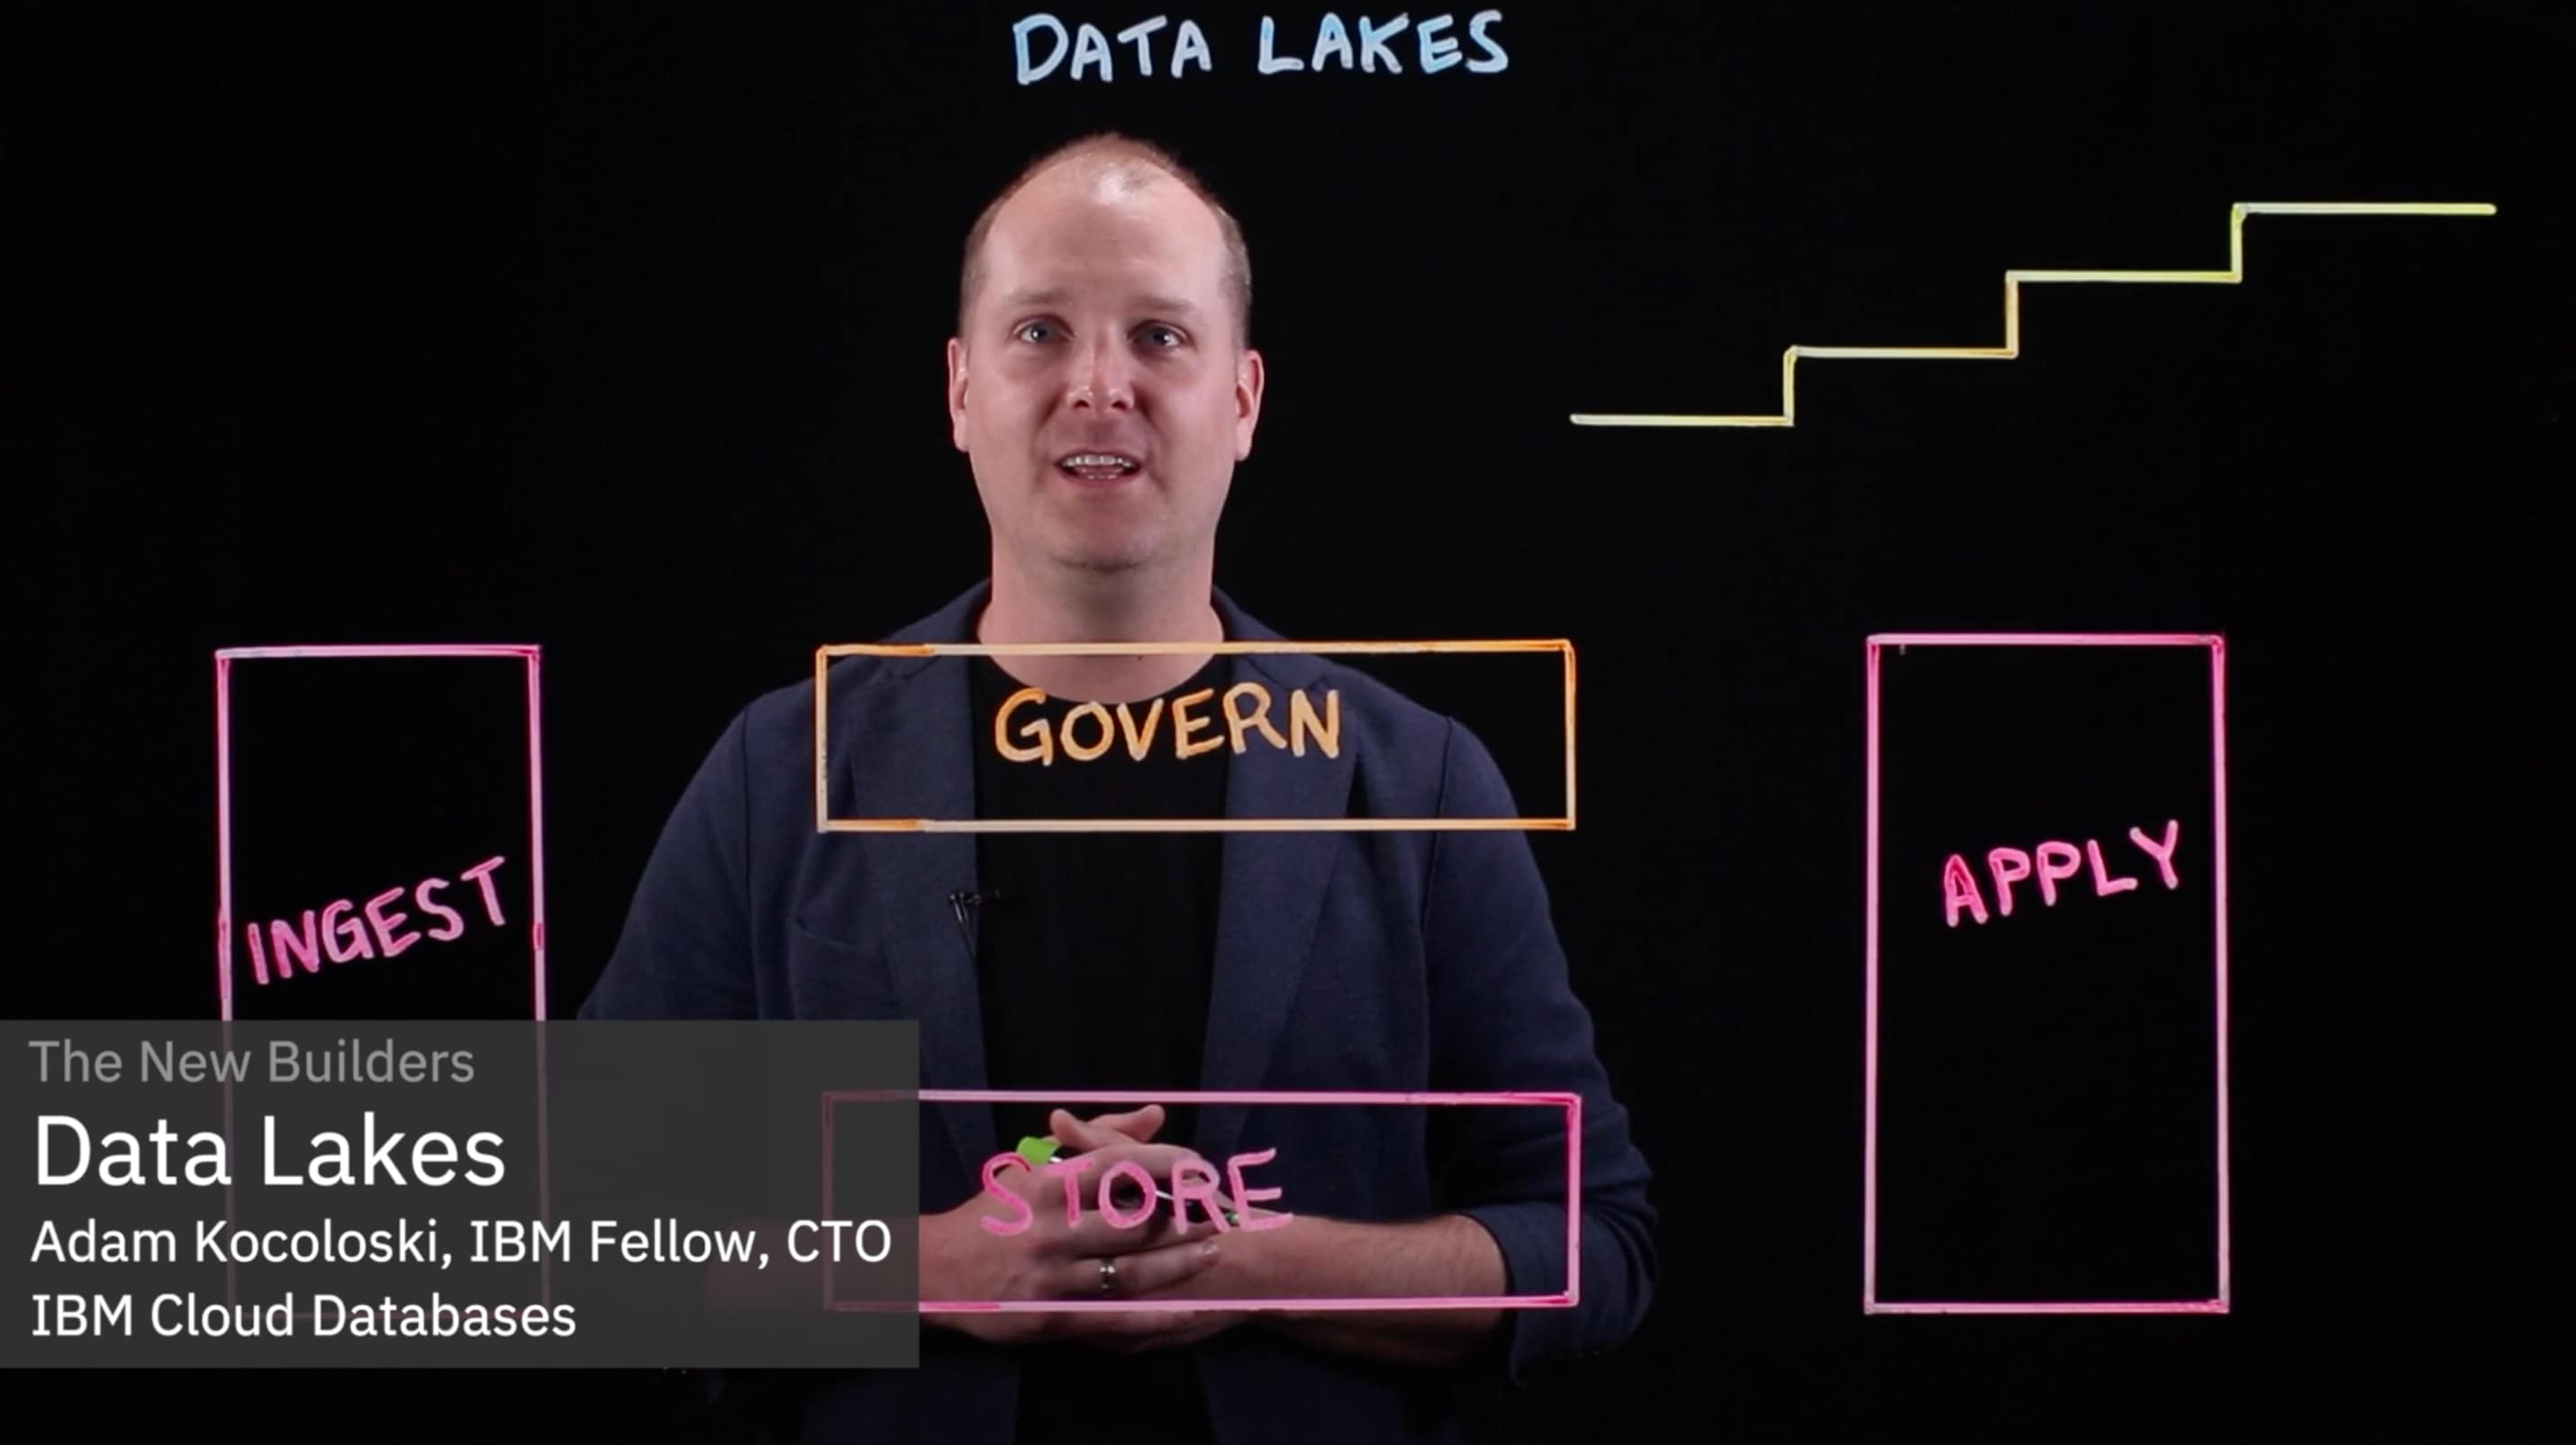 What are data lakes?